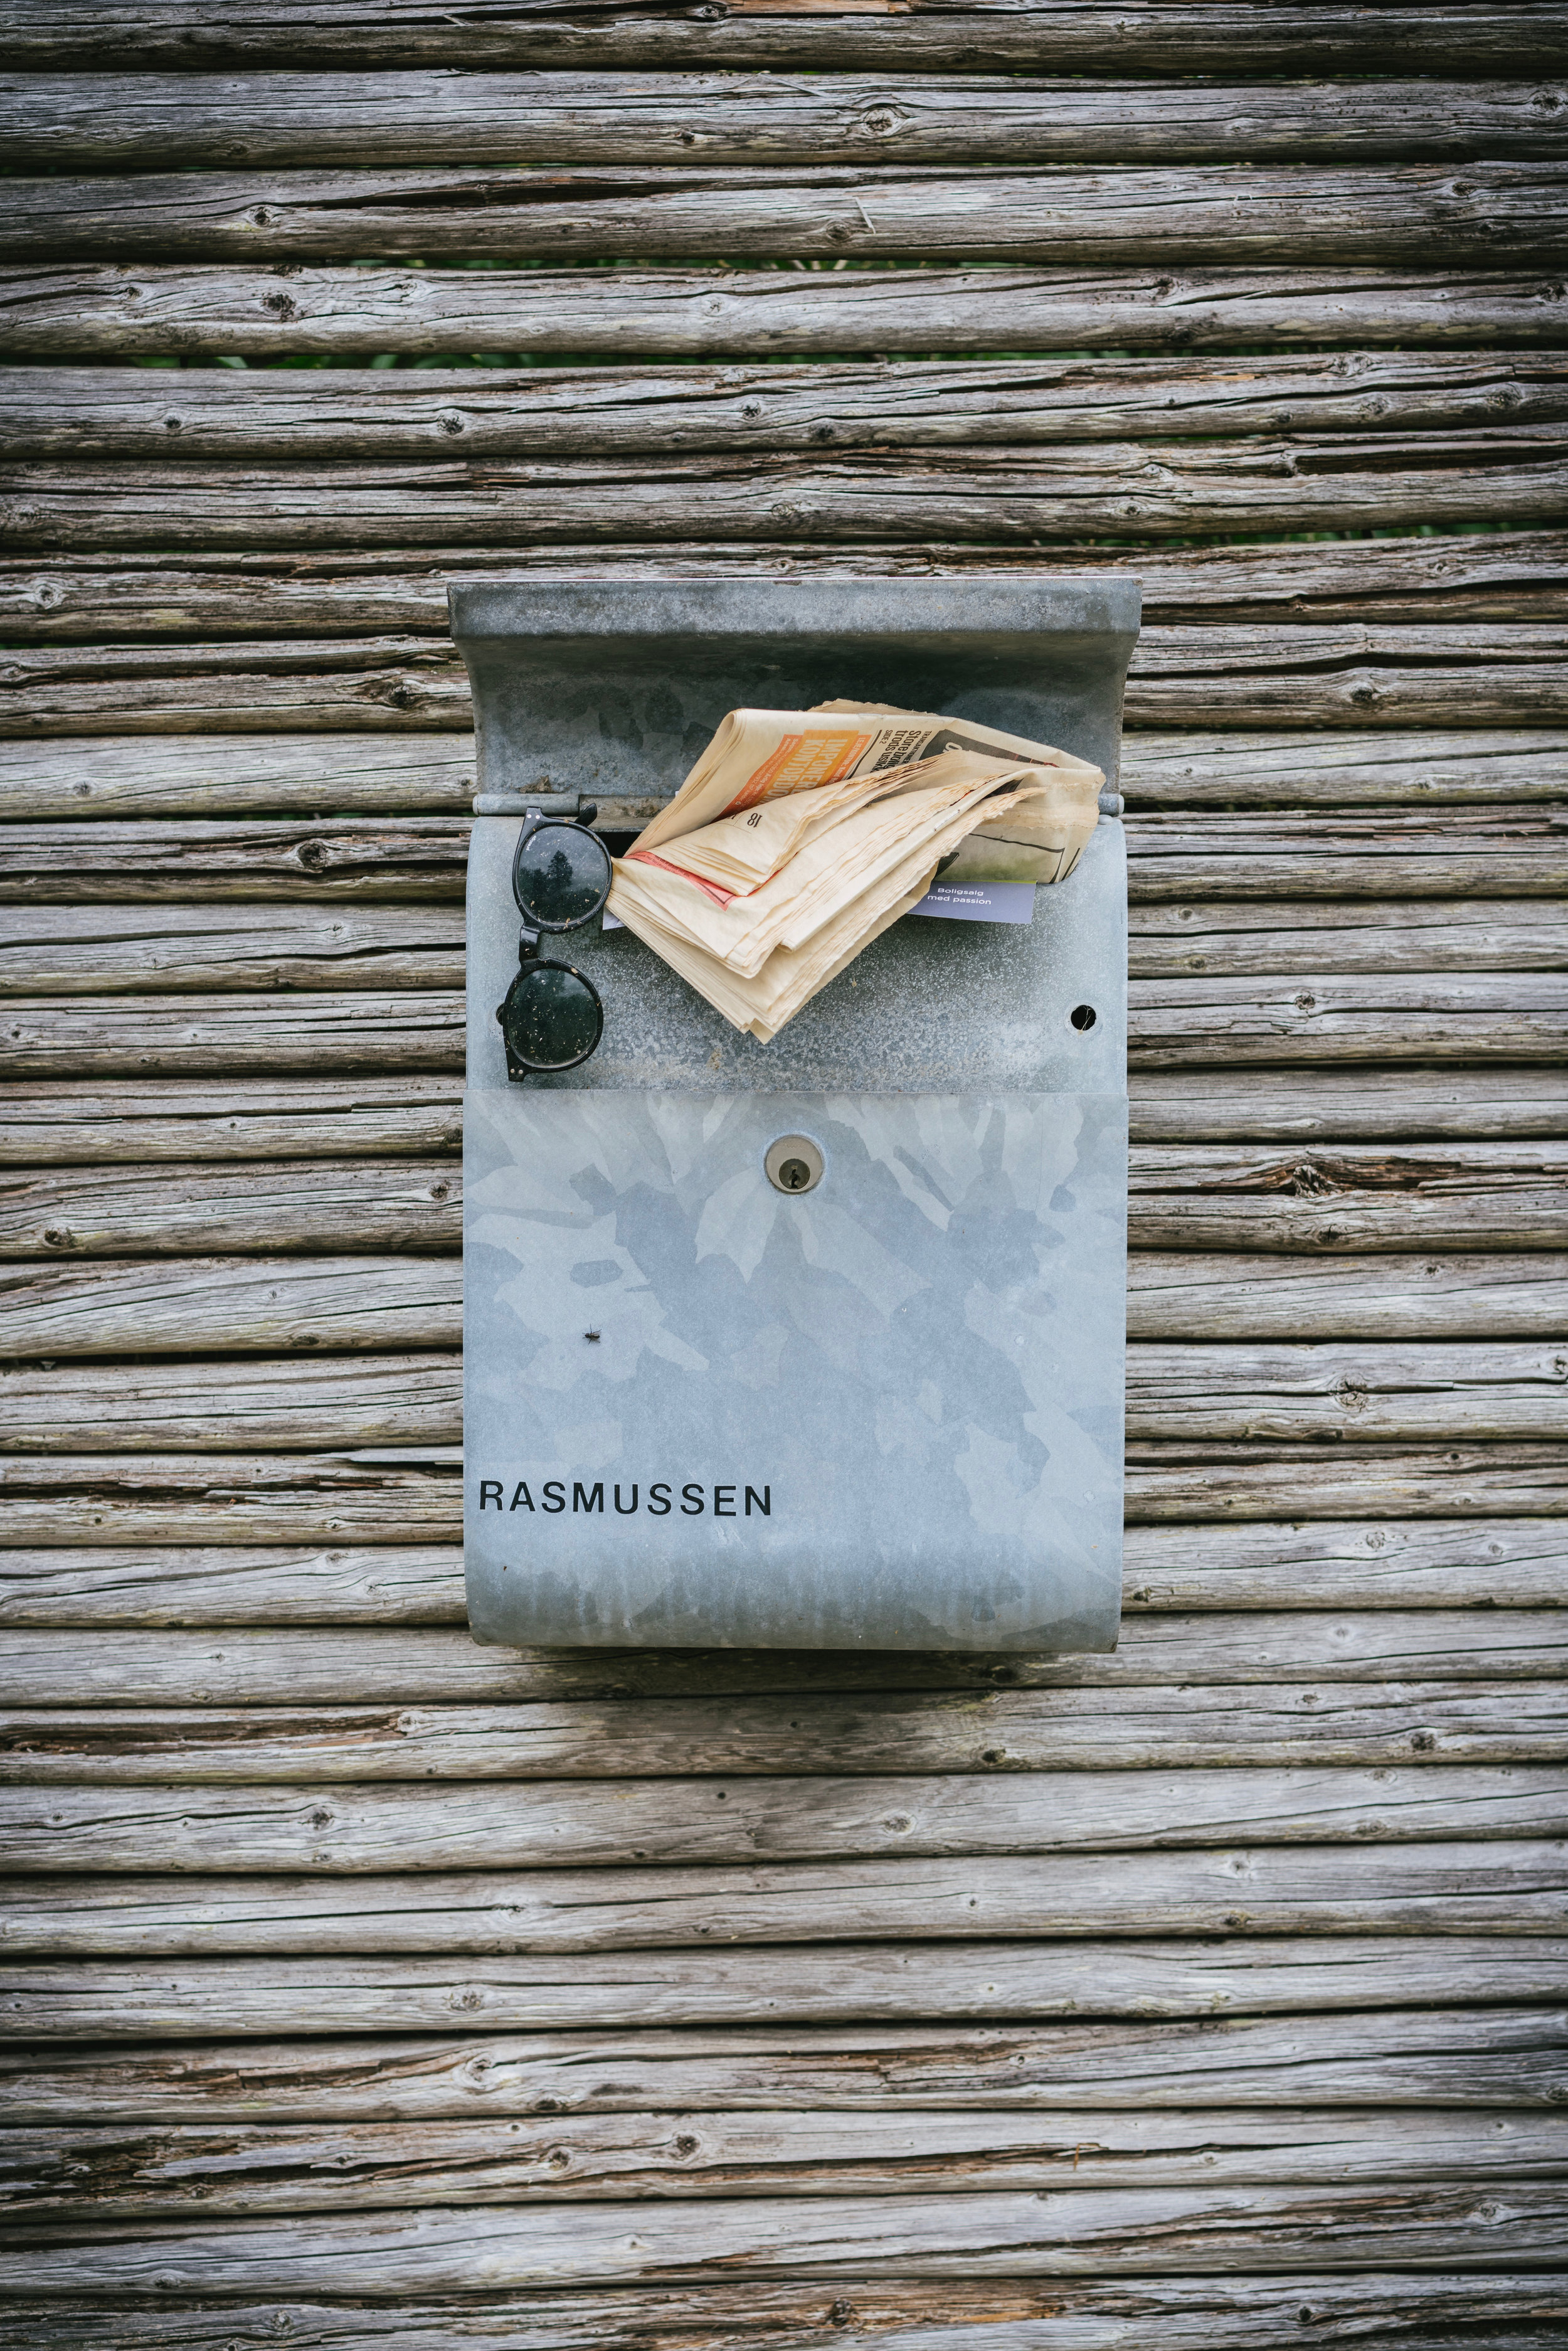 10 Facts About Denmark article. Image of rustic postbox with family name on it.jpg